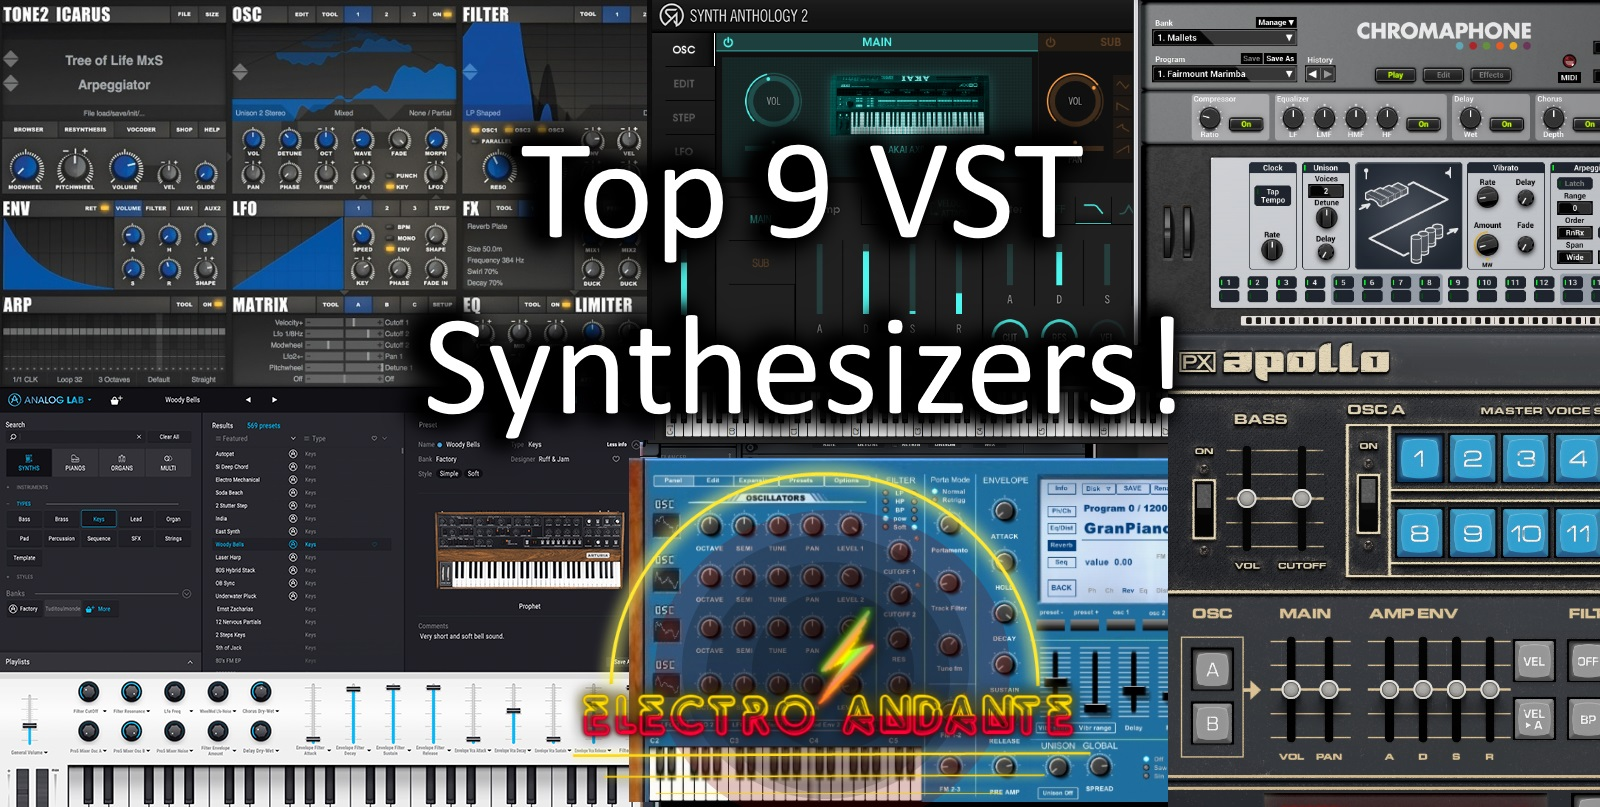 Top 9 VST Synthesizers!